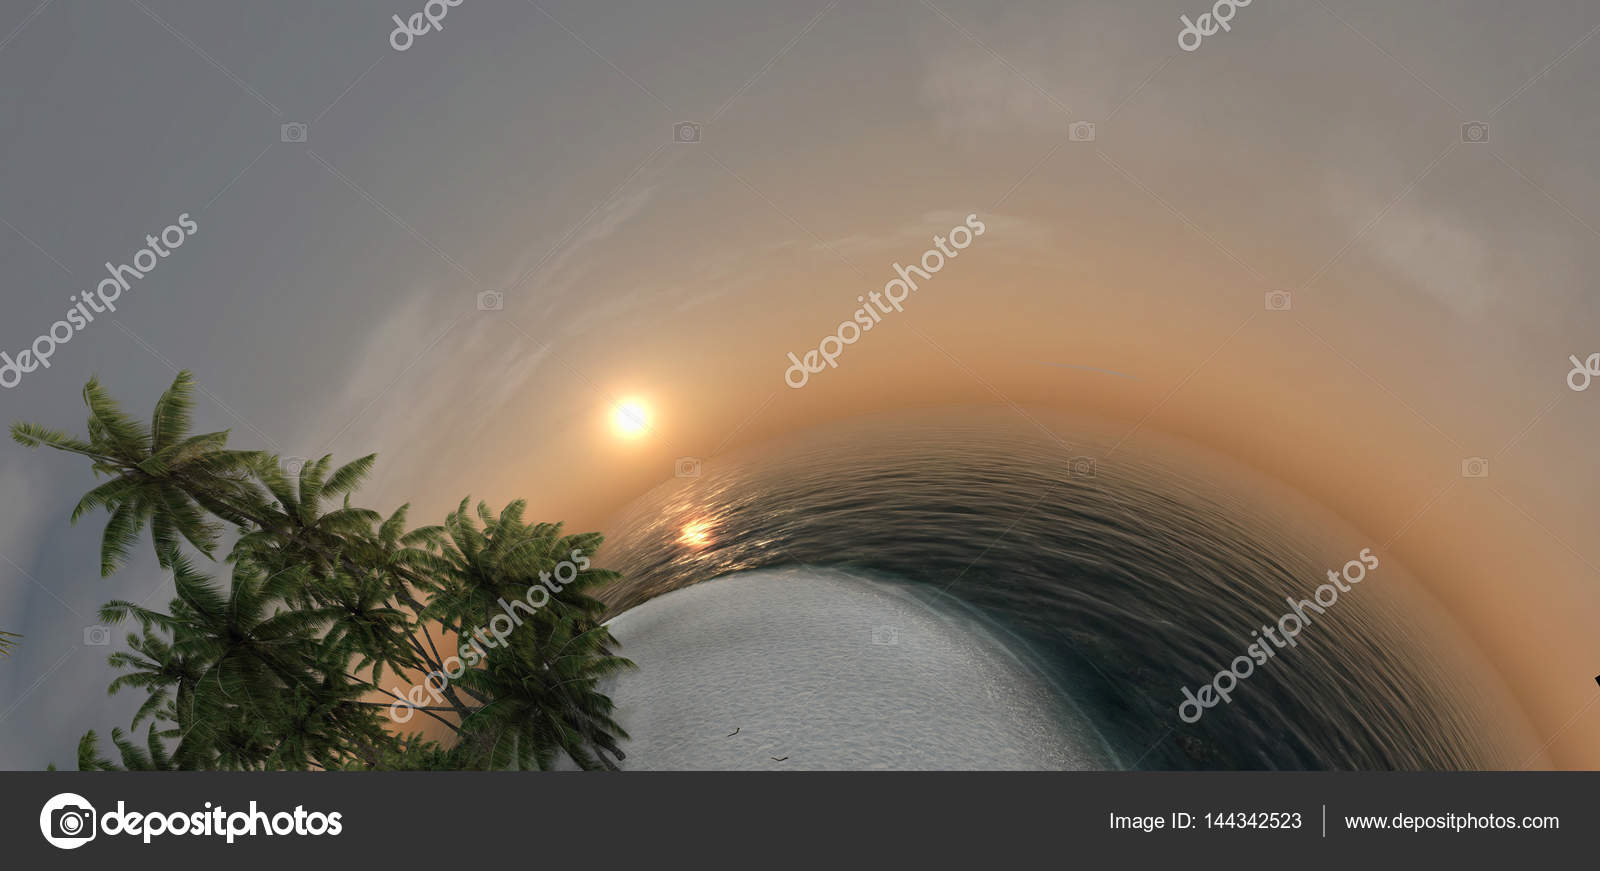 small planet, ocean, tropical island, palm trees 3d rendering